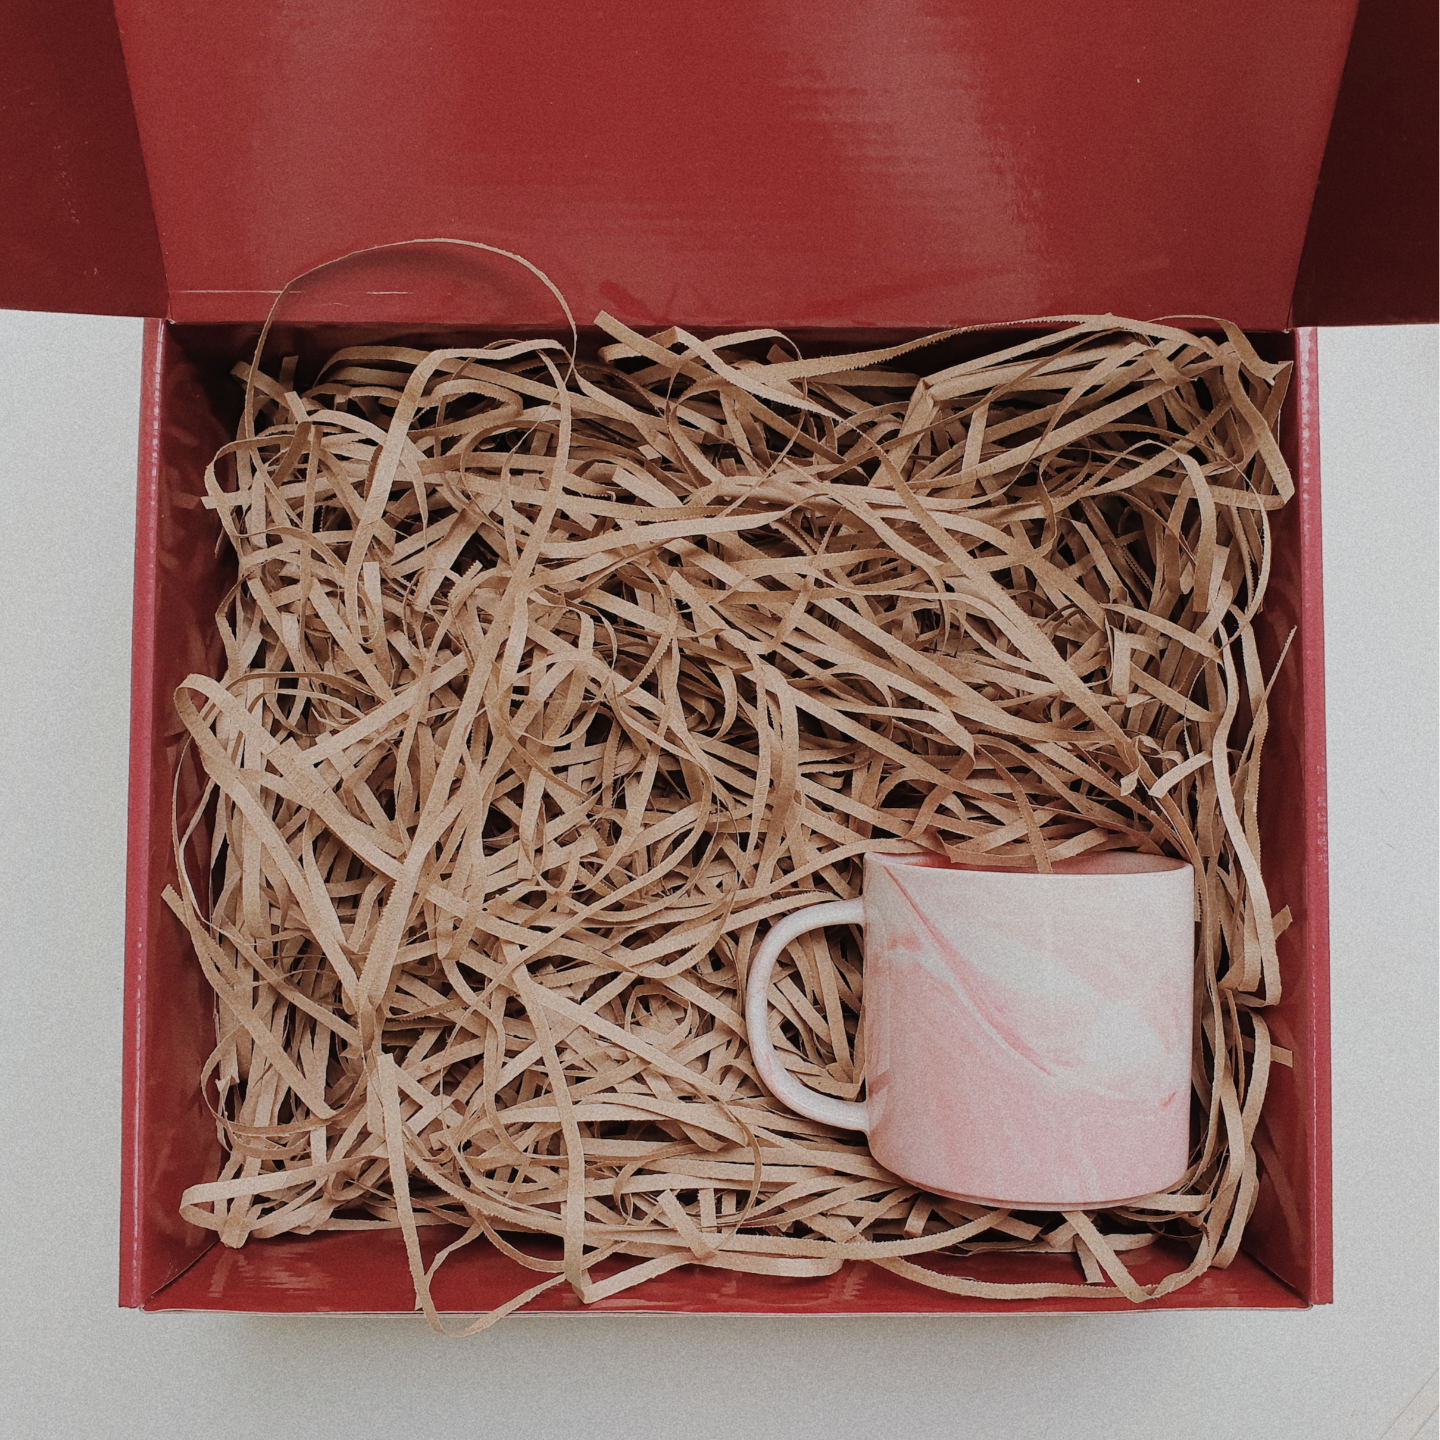 Red gift box filled with brown shredded paper. On the bottom right is a pink marbled mug with handle.